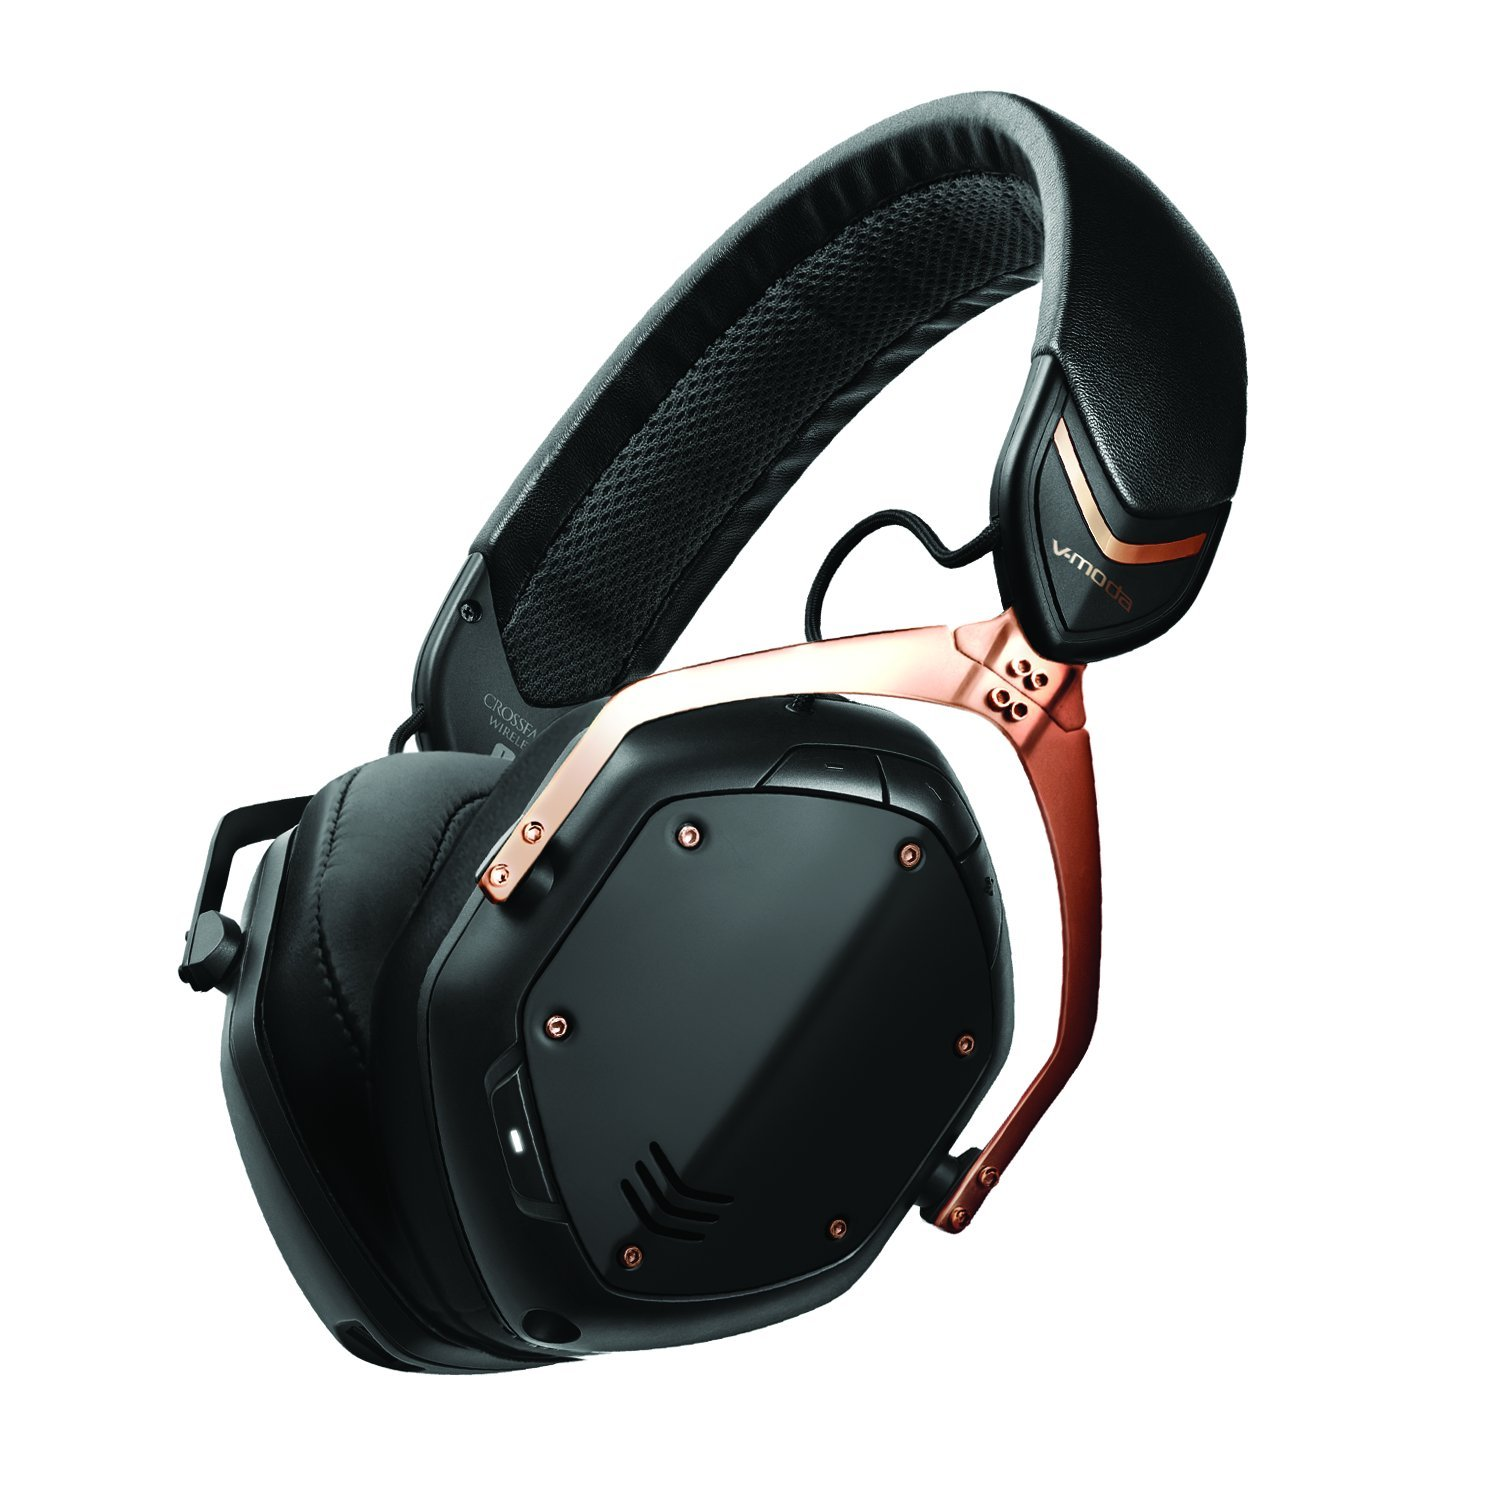 V-Moda Crossfade 2 Wireless Headphones Black Friday Deal 2019